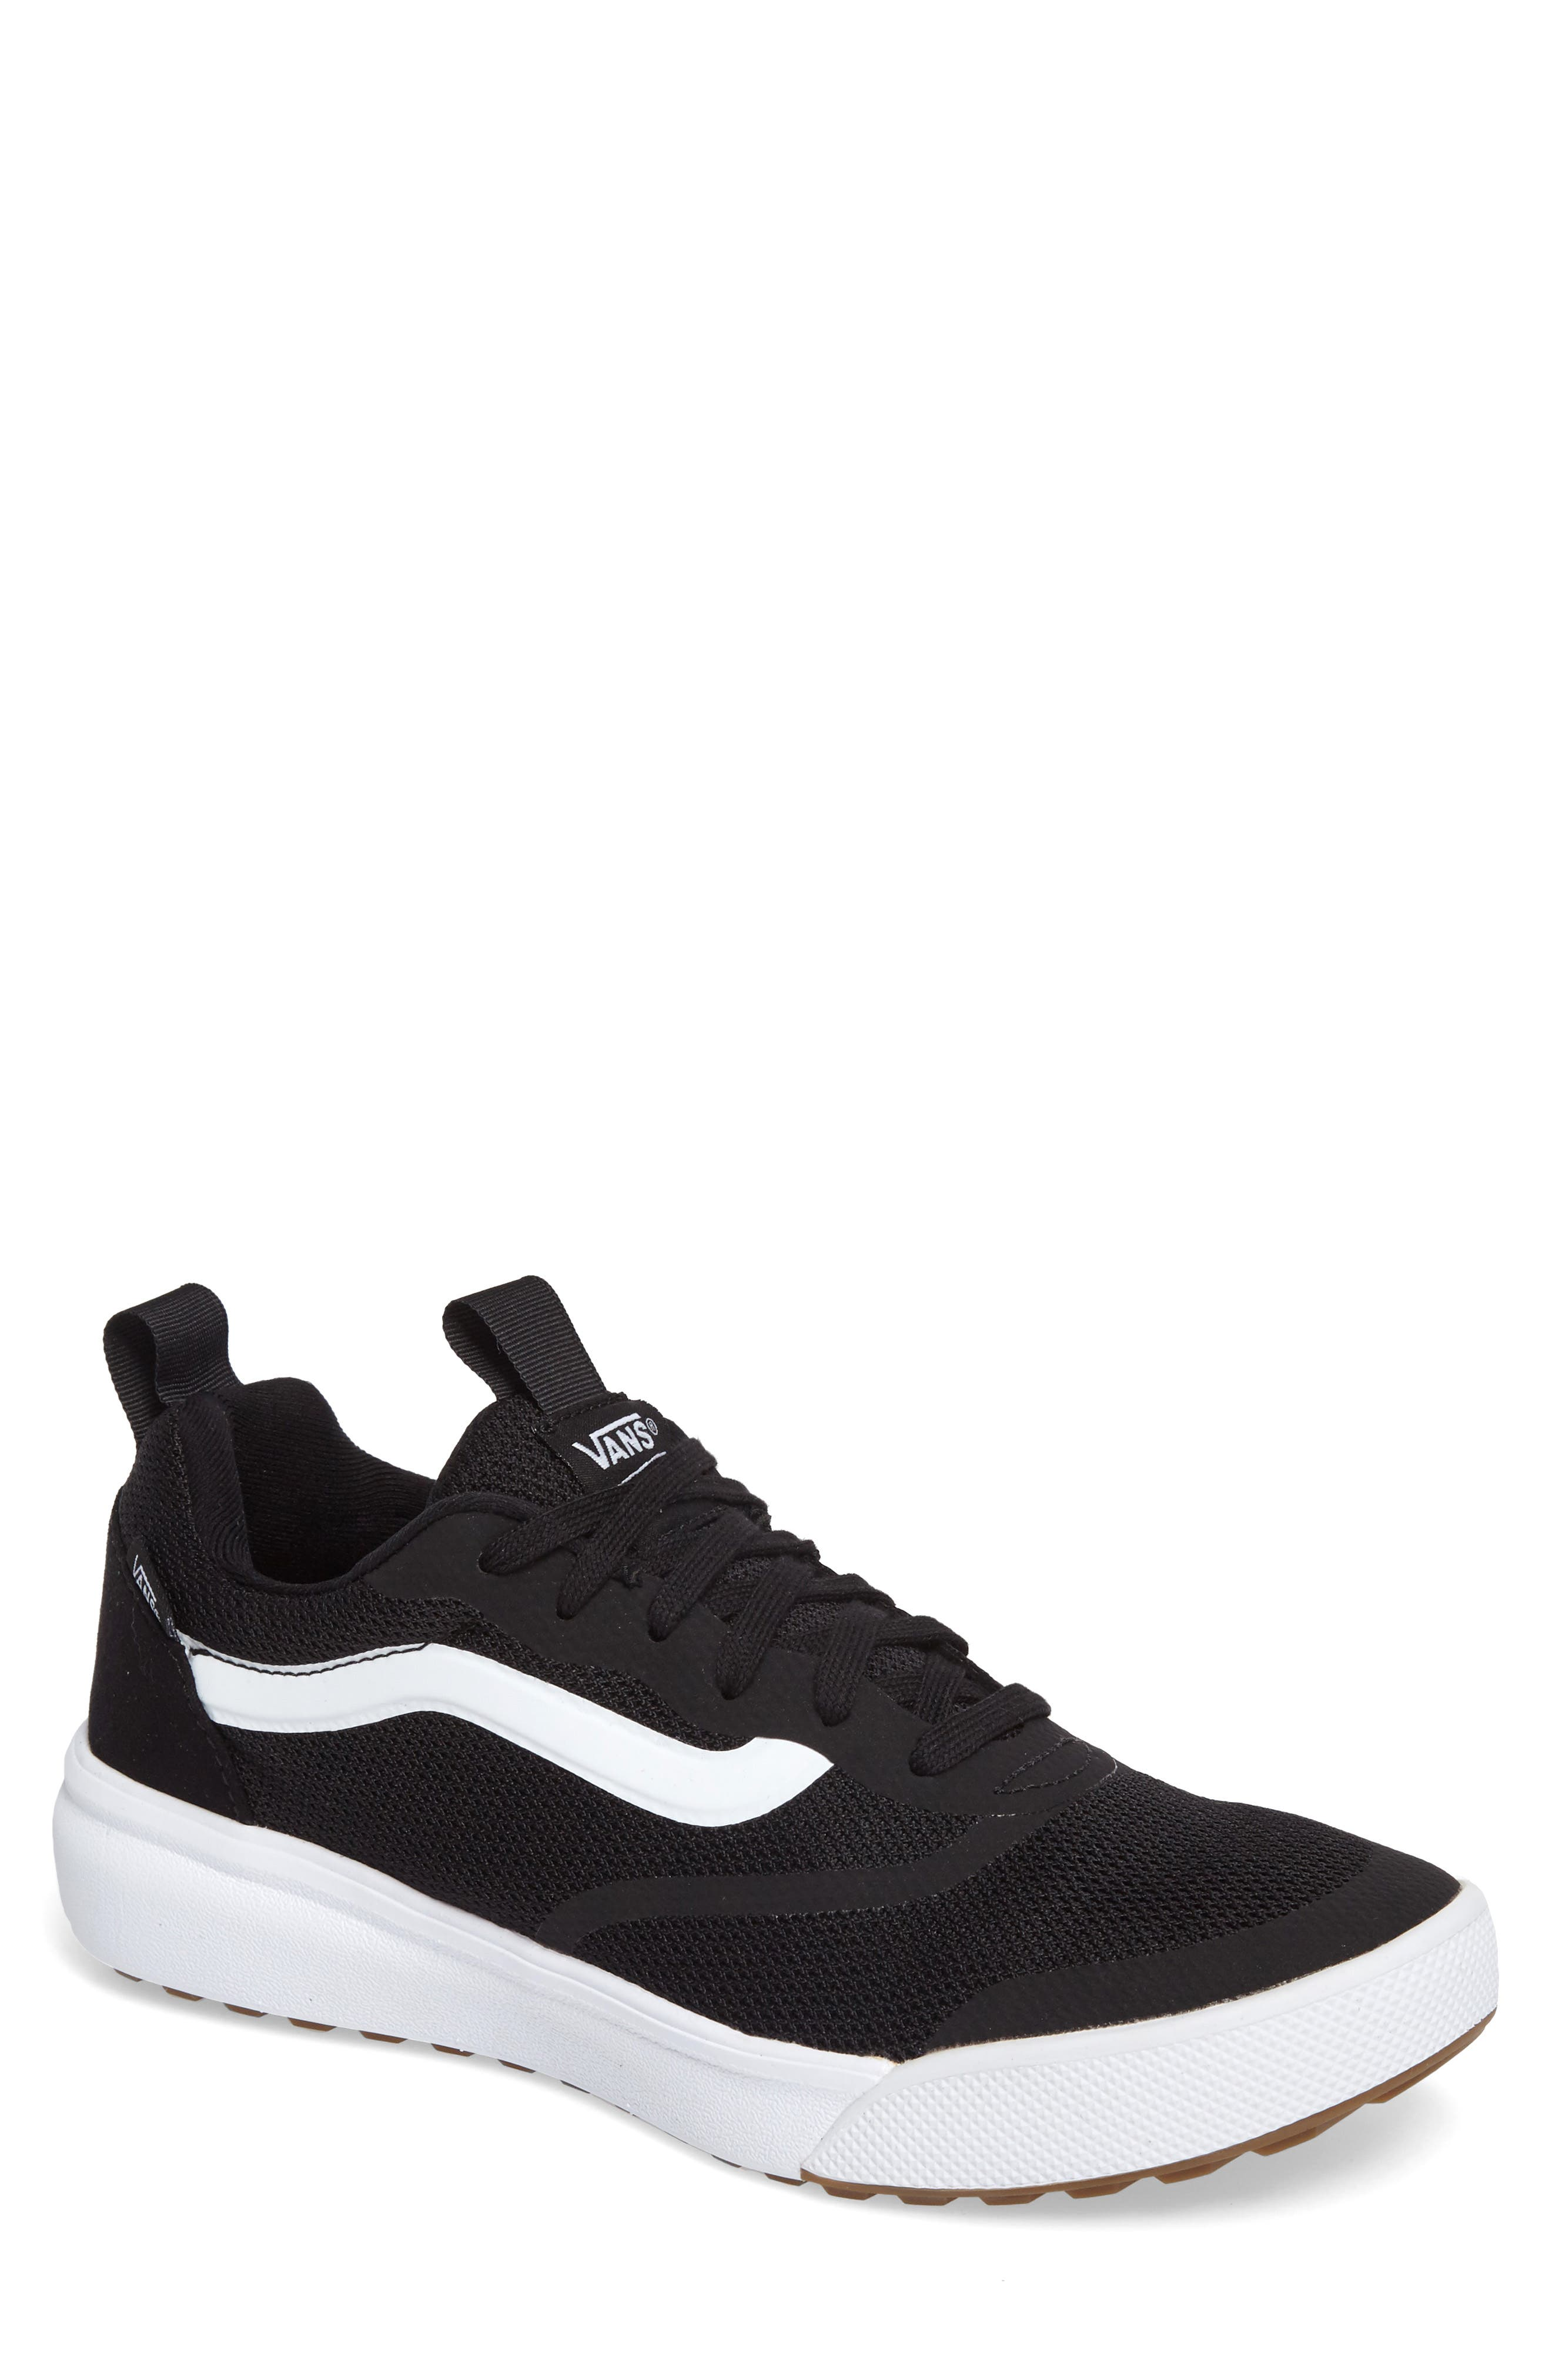 Vans Ultrarange Rapidwield Sneaker (Men)